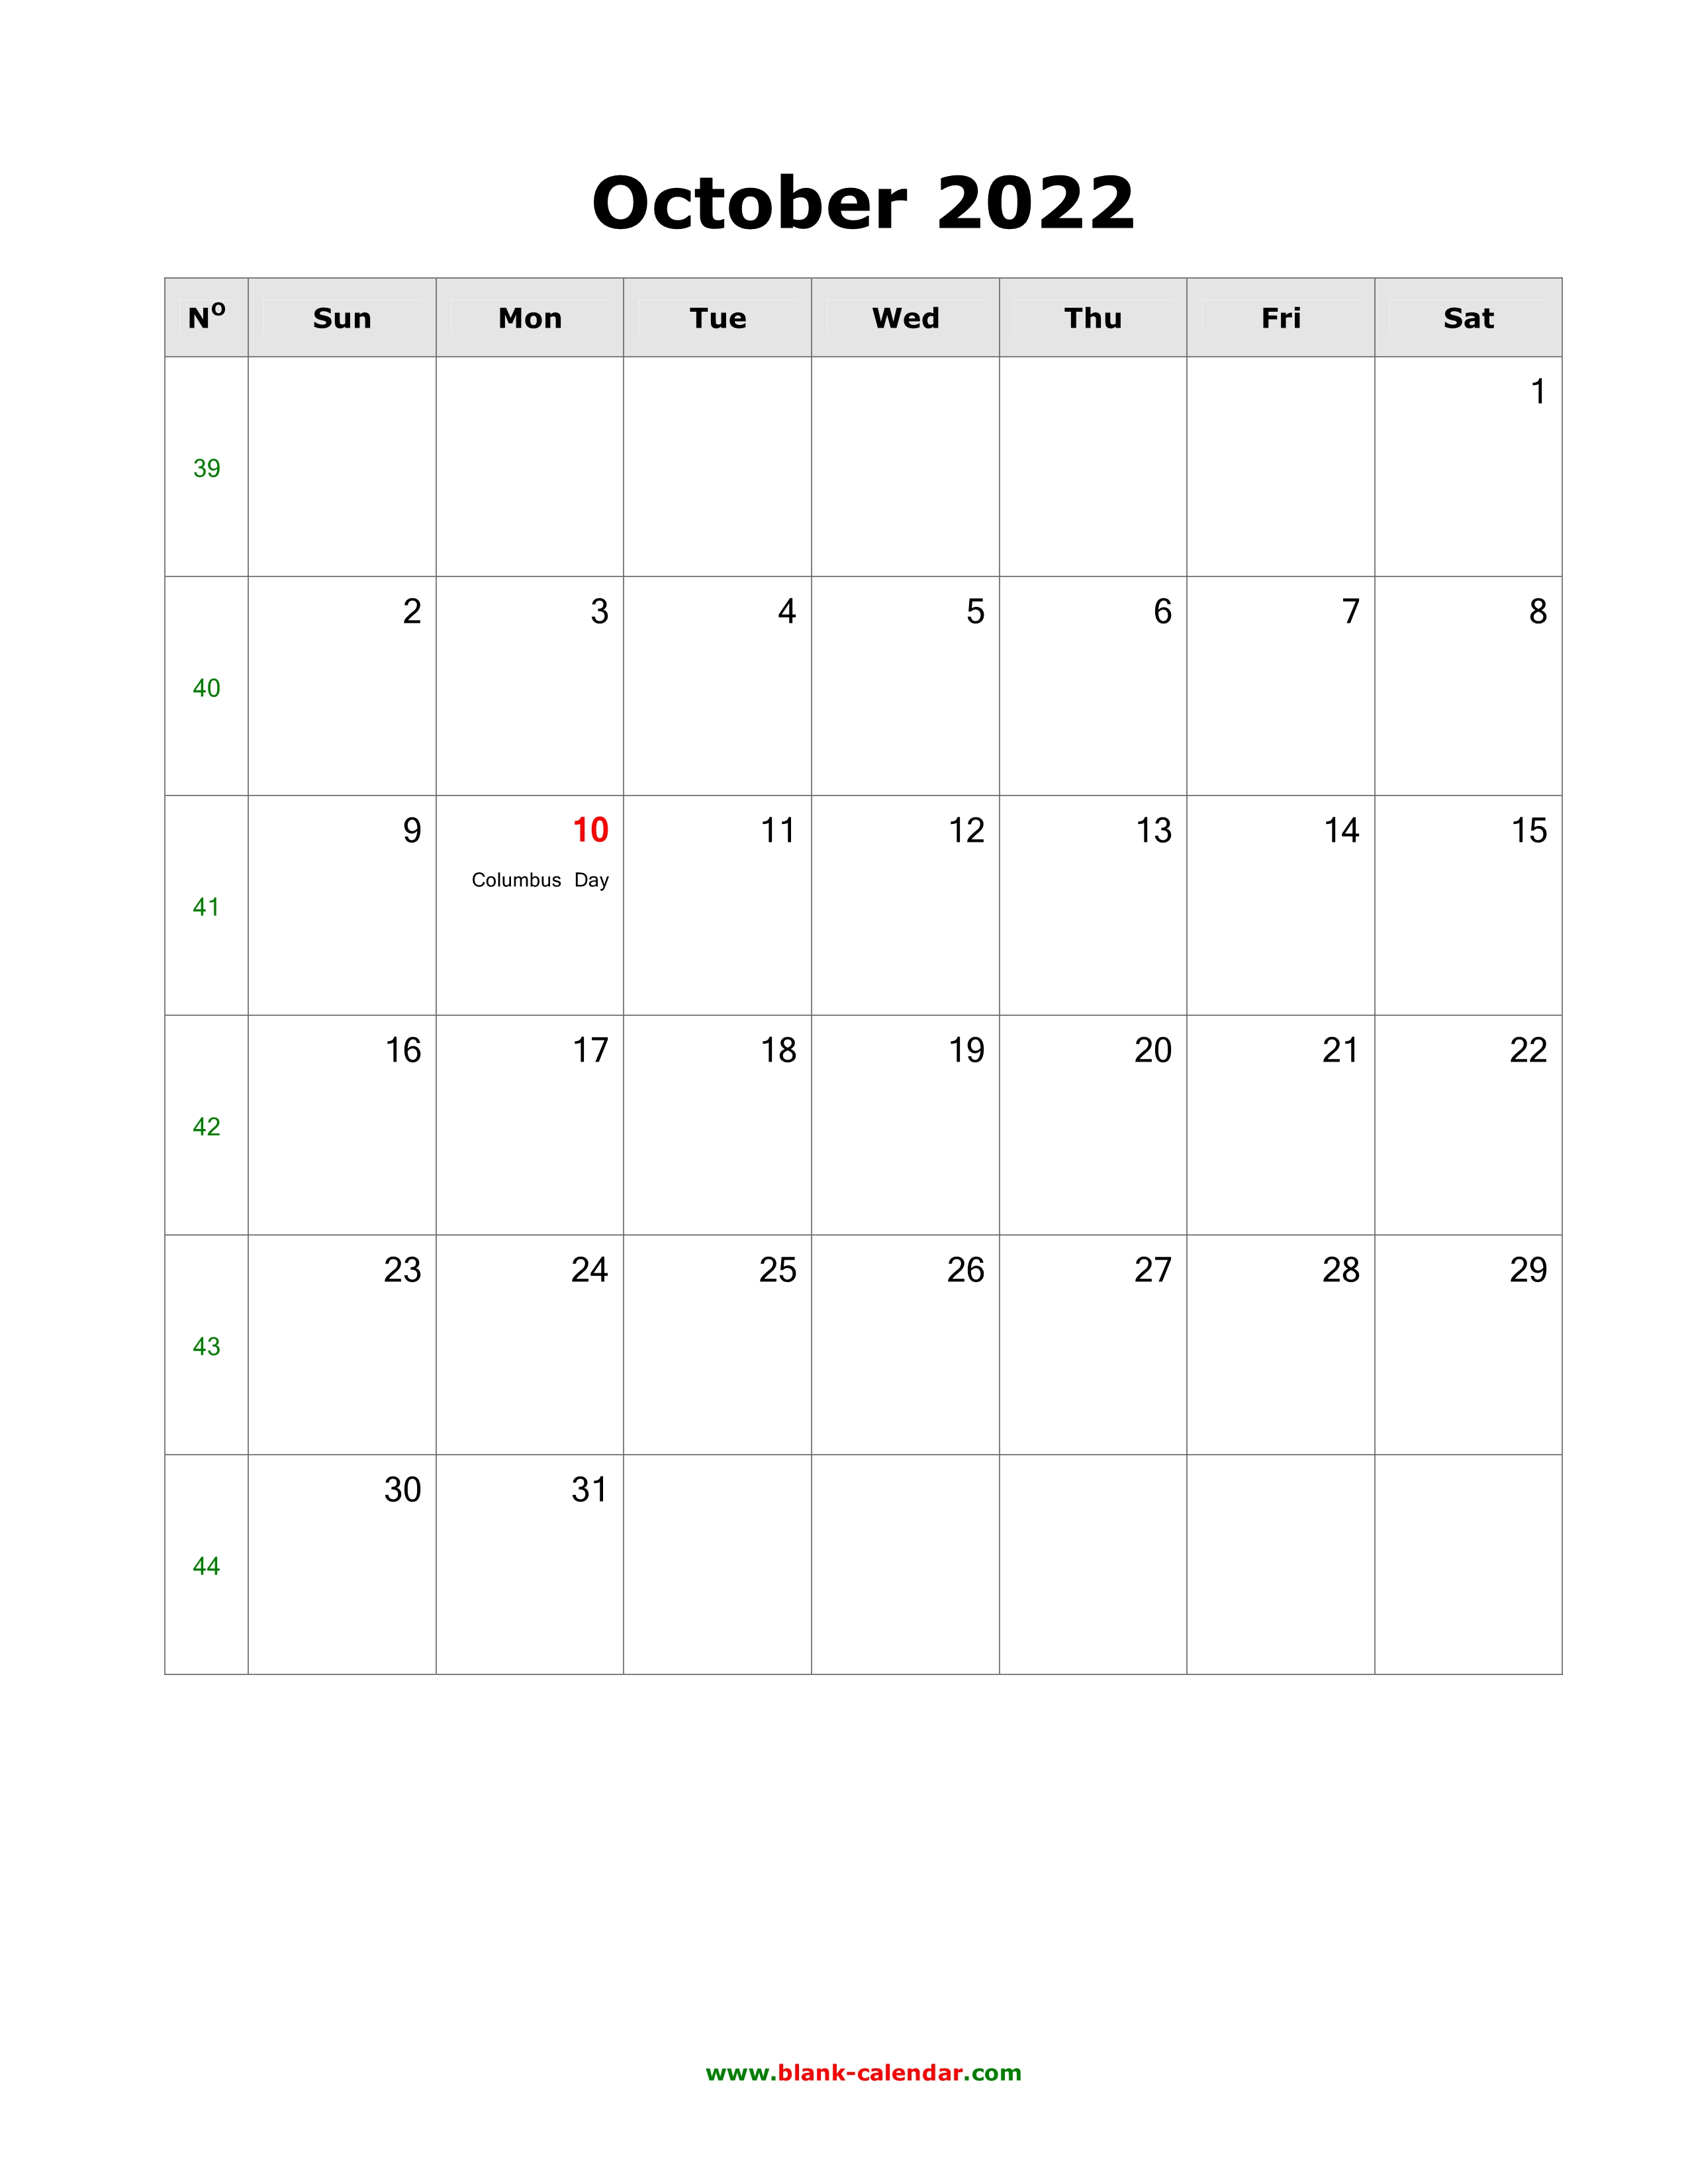 Oct 2022 Calendar With Holidays.Download October 2022 Blank Calendar With Us Holidays Vertical